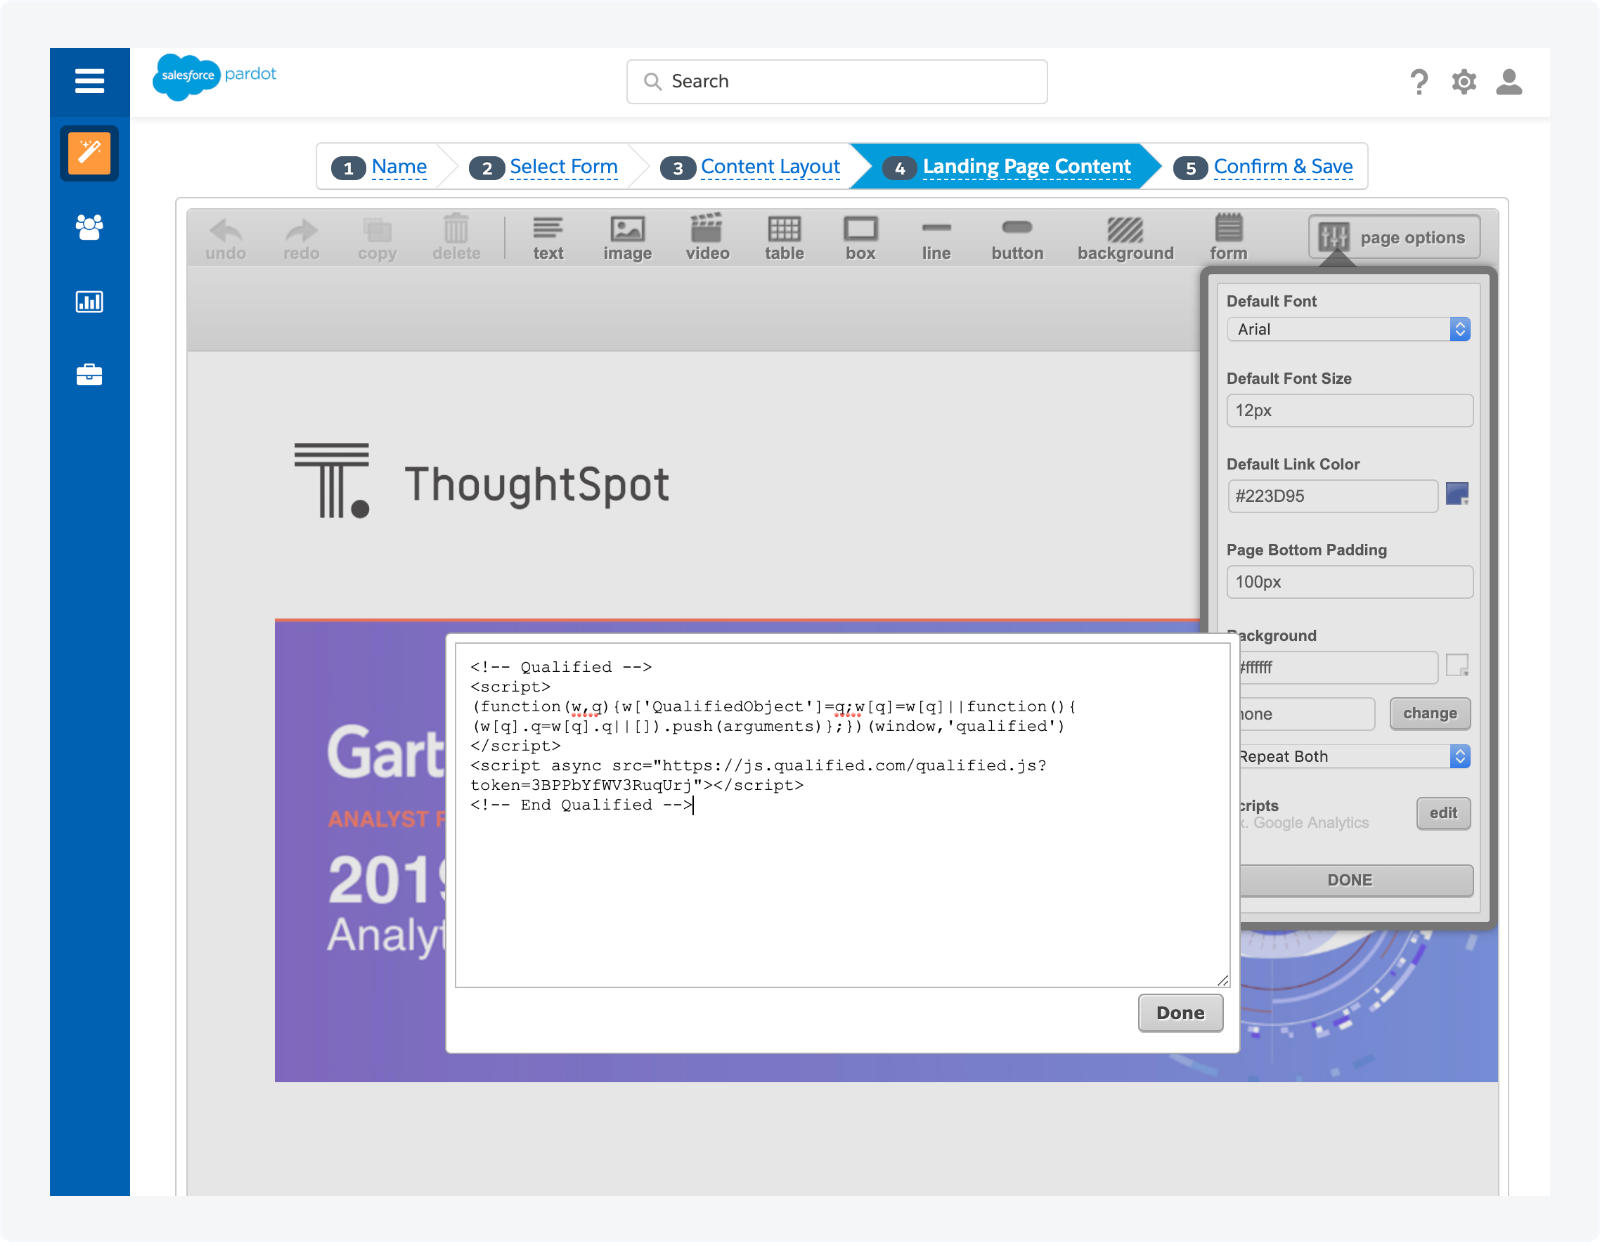 Adding the Qualified javascript snippet to your Pardot landing pages